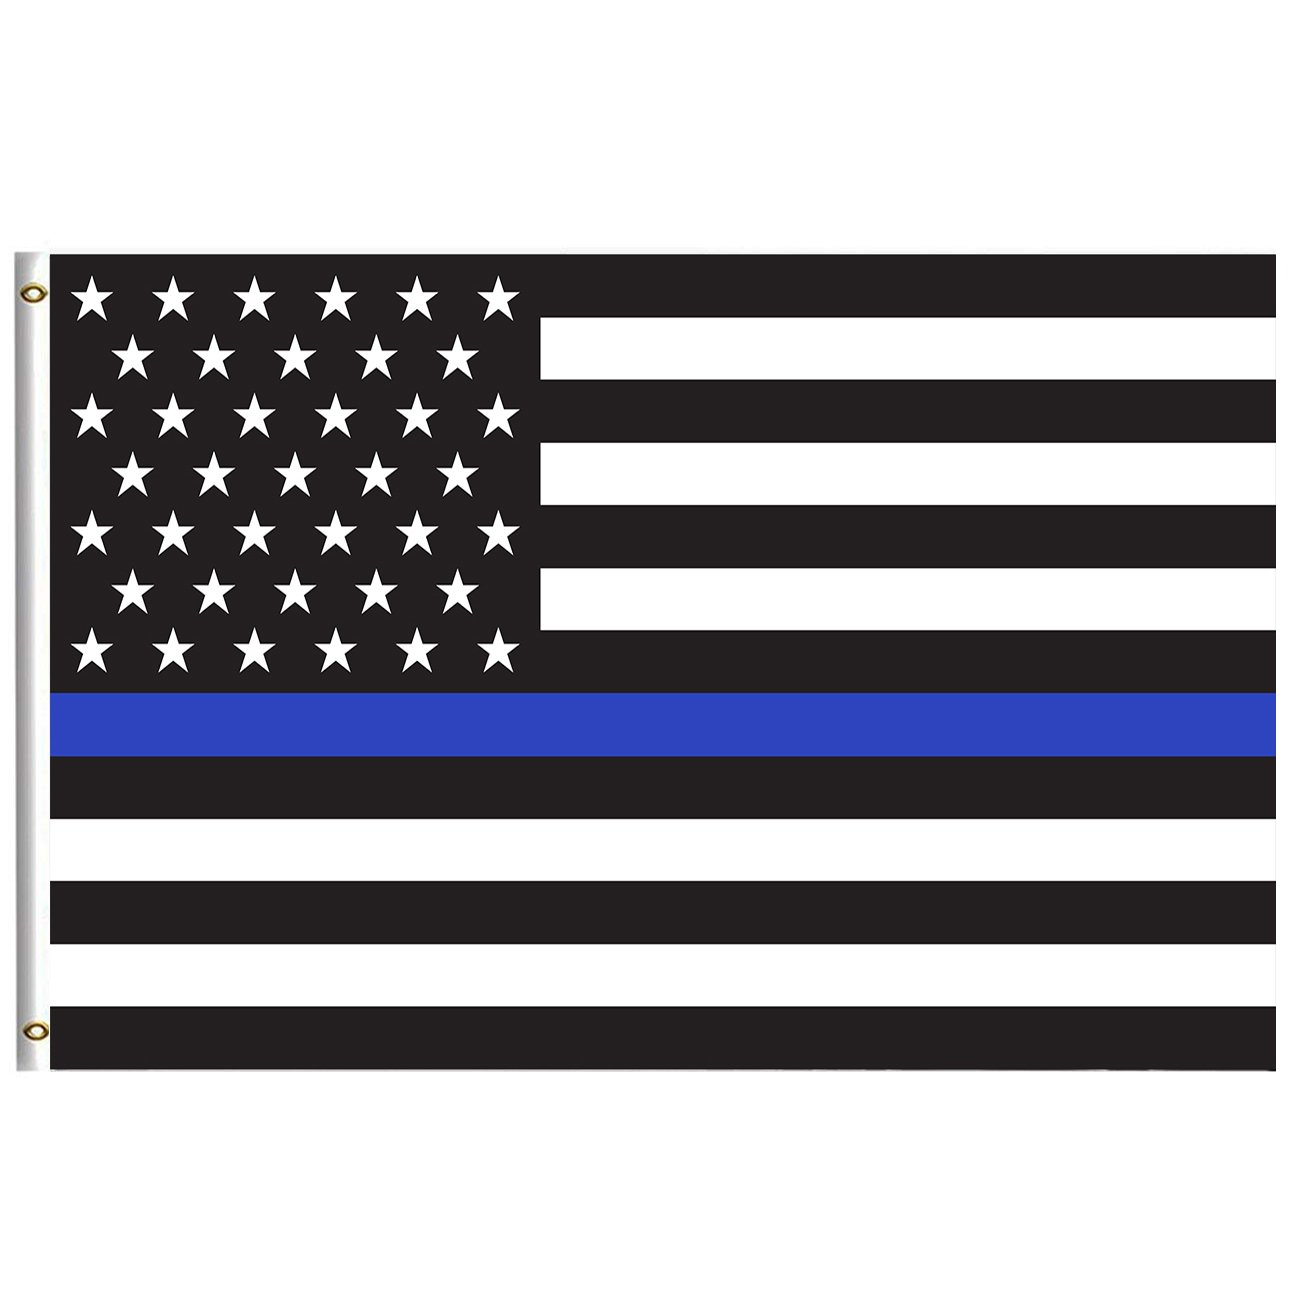 Thin Blue Line USA America Flags Flag 4x6 Feet with Brass Grommet Double Stitch Honoring Law Enforcement Officers Banner Garden Flag House Breeze Decorations for Indoor Outdoor Home Boat Car